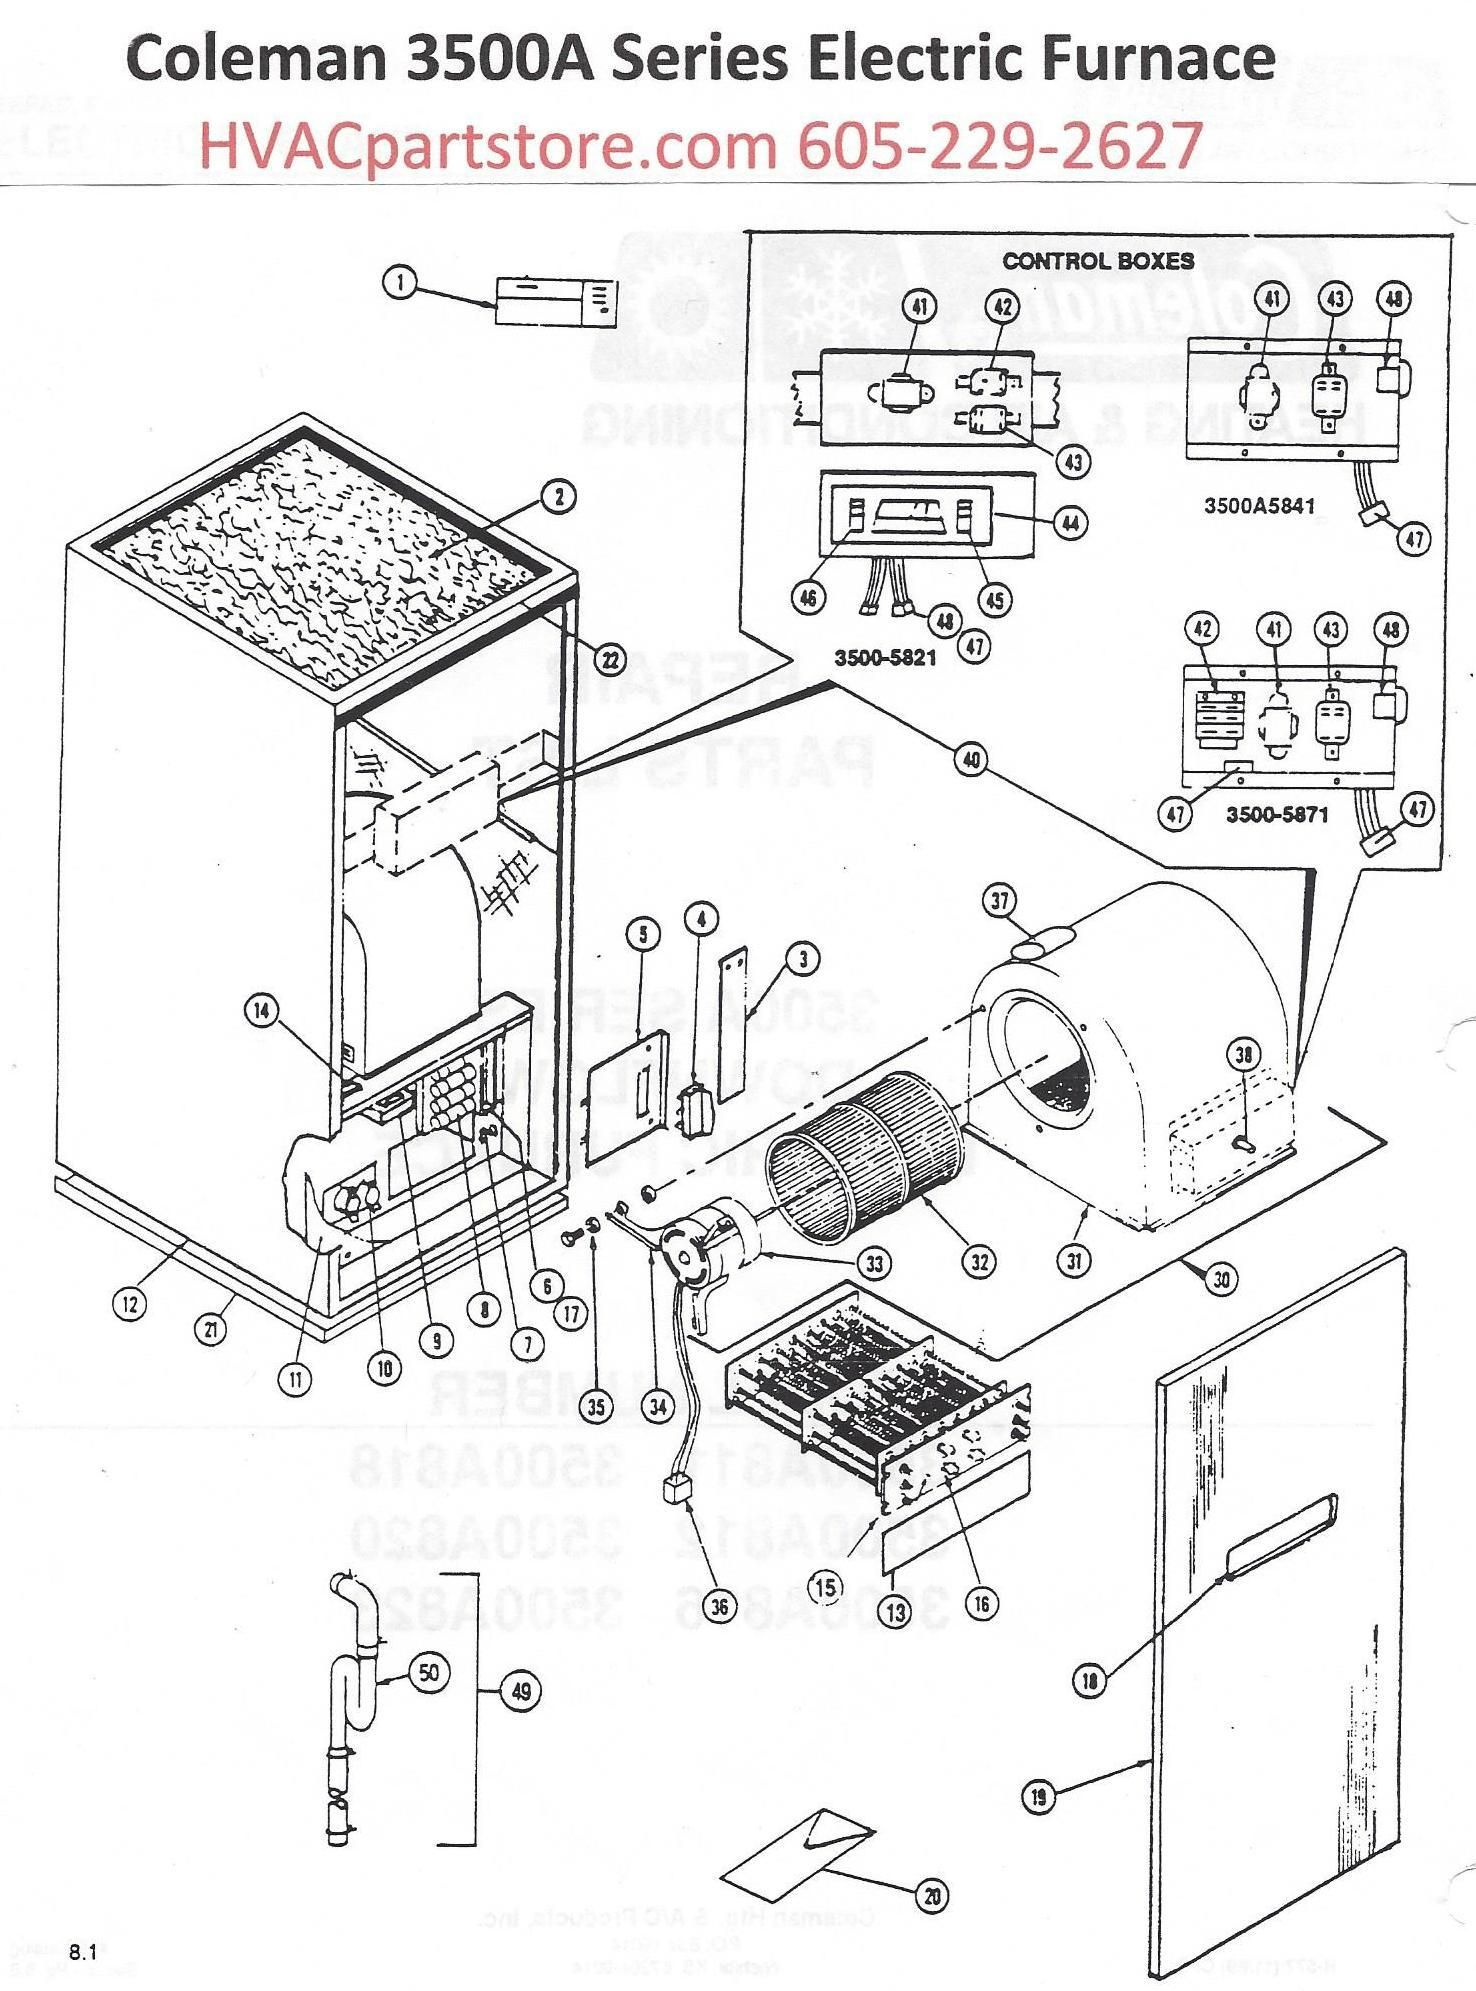 32 Wiring Diagram For Electric Furnace Http Bookingritzcarlton Info 32 Wiring Diagram For Electric Furnace Electric Furnace Furnace Diagram